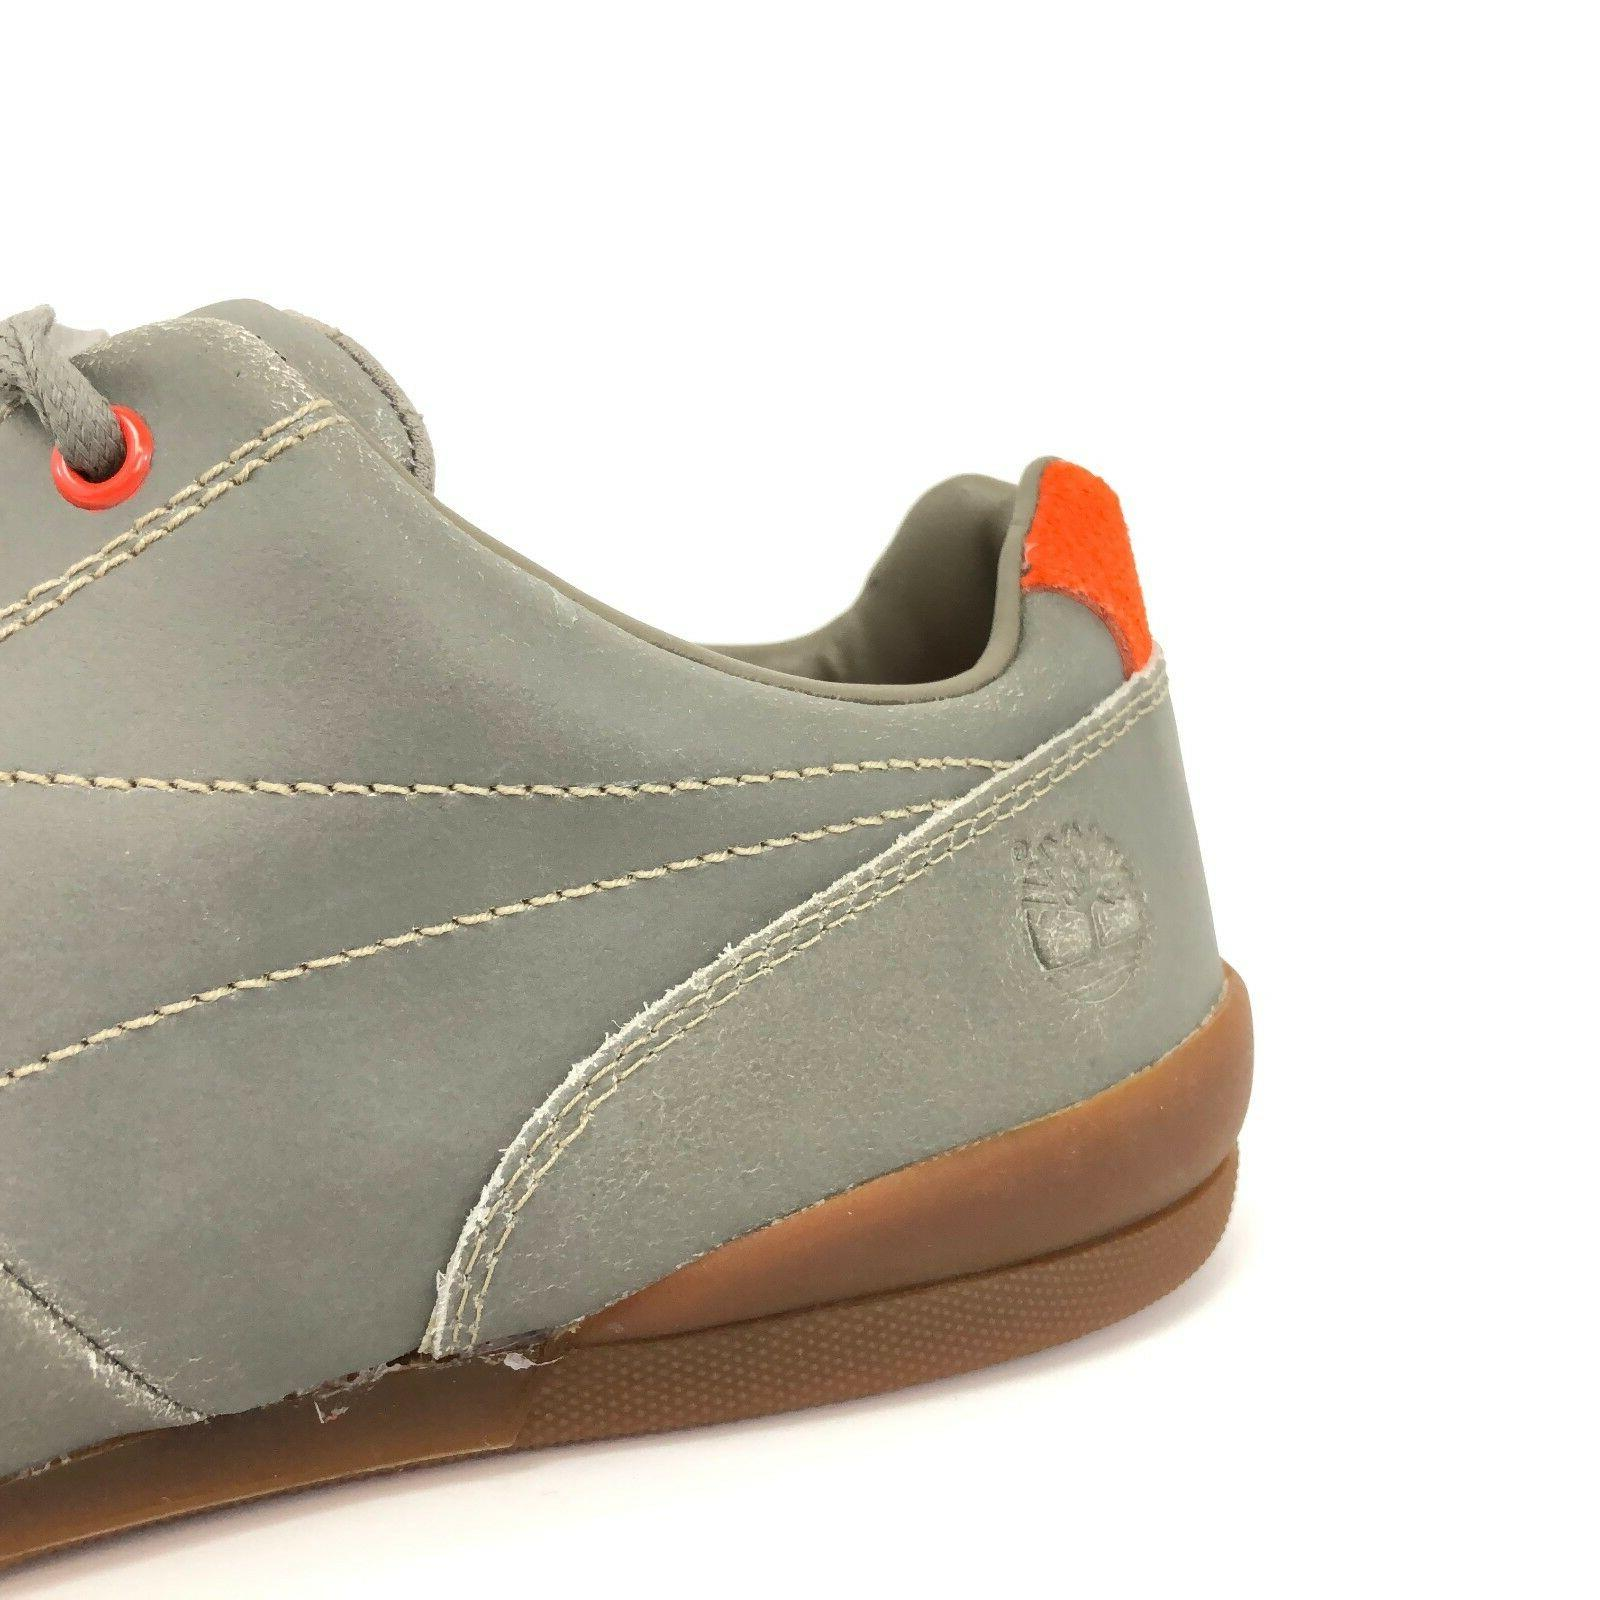 Timberland Cap Toe Oxford Shoes 5357A